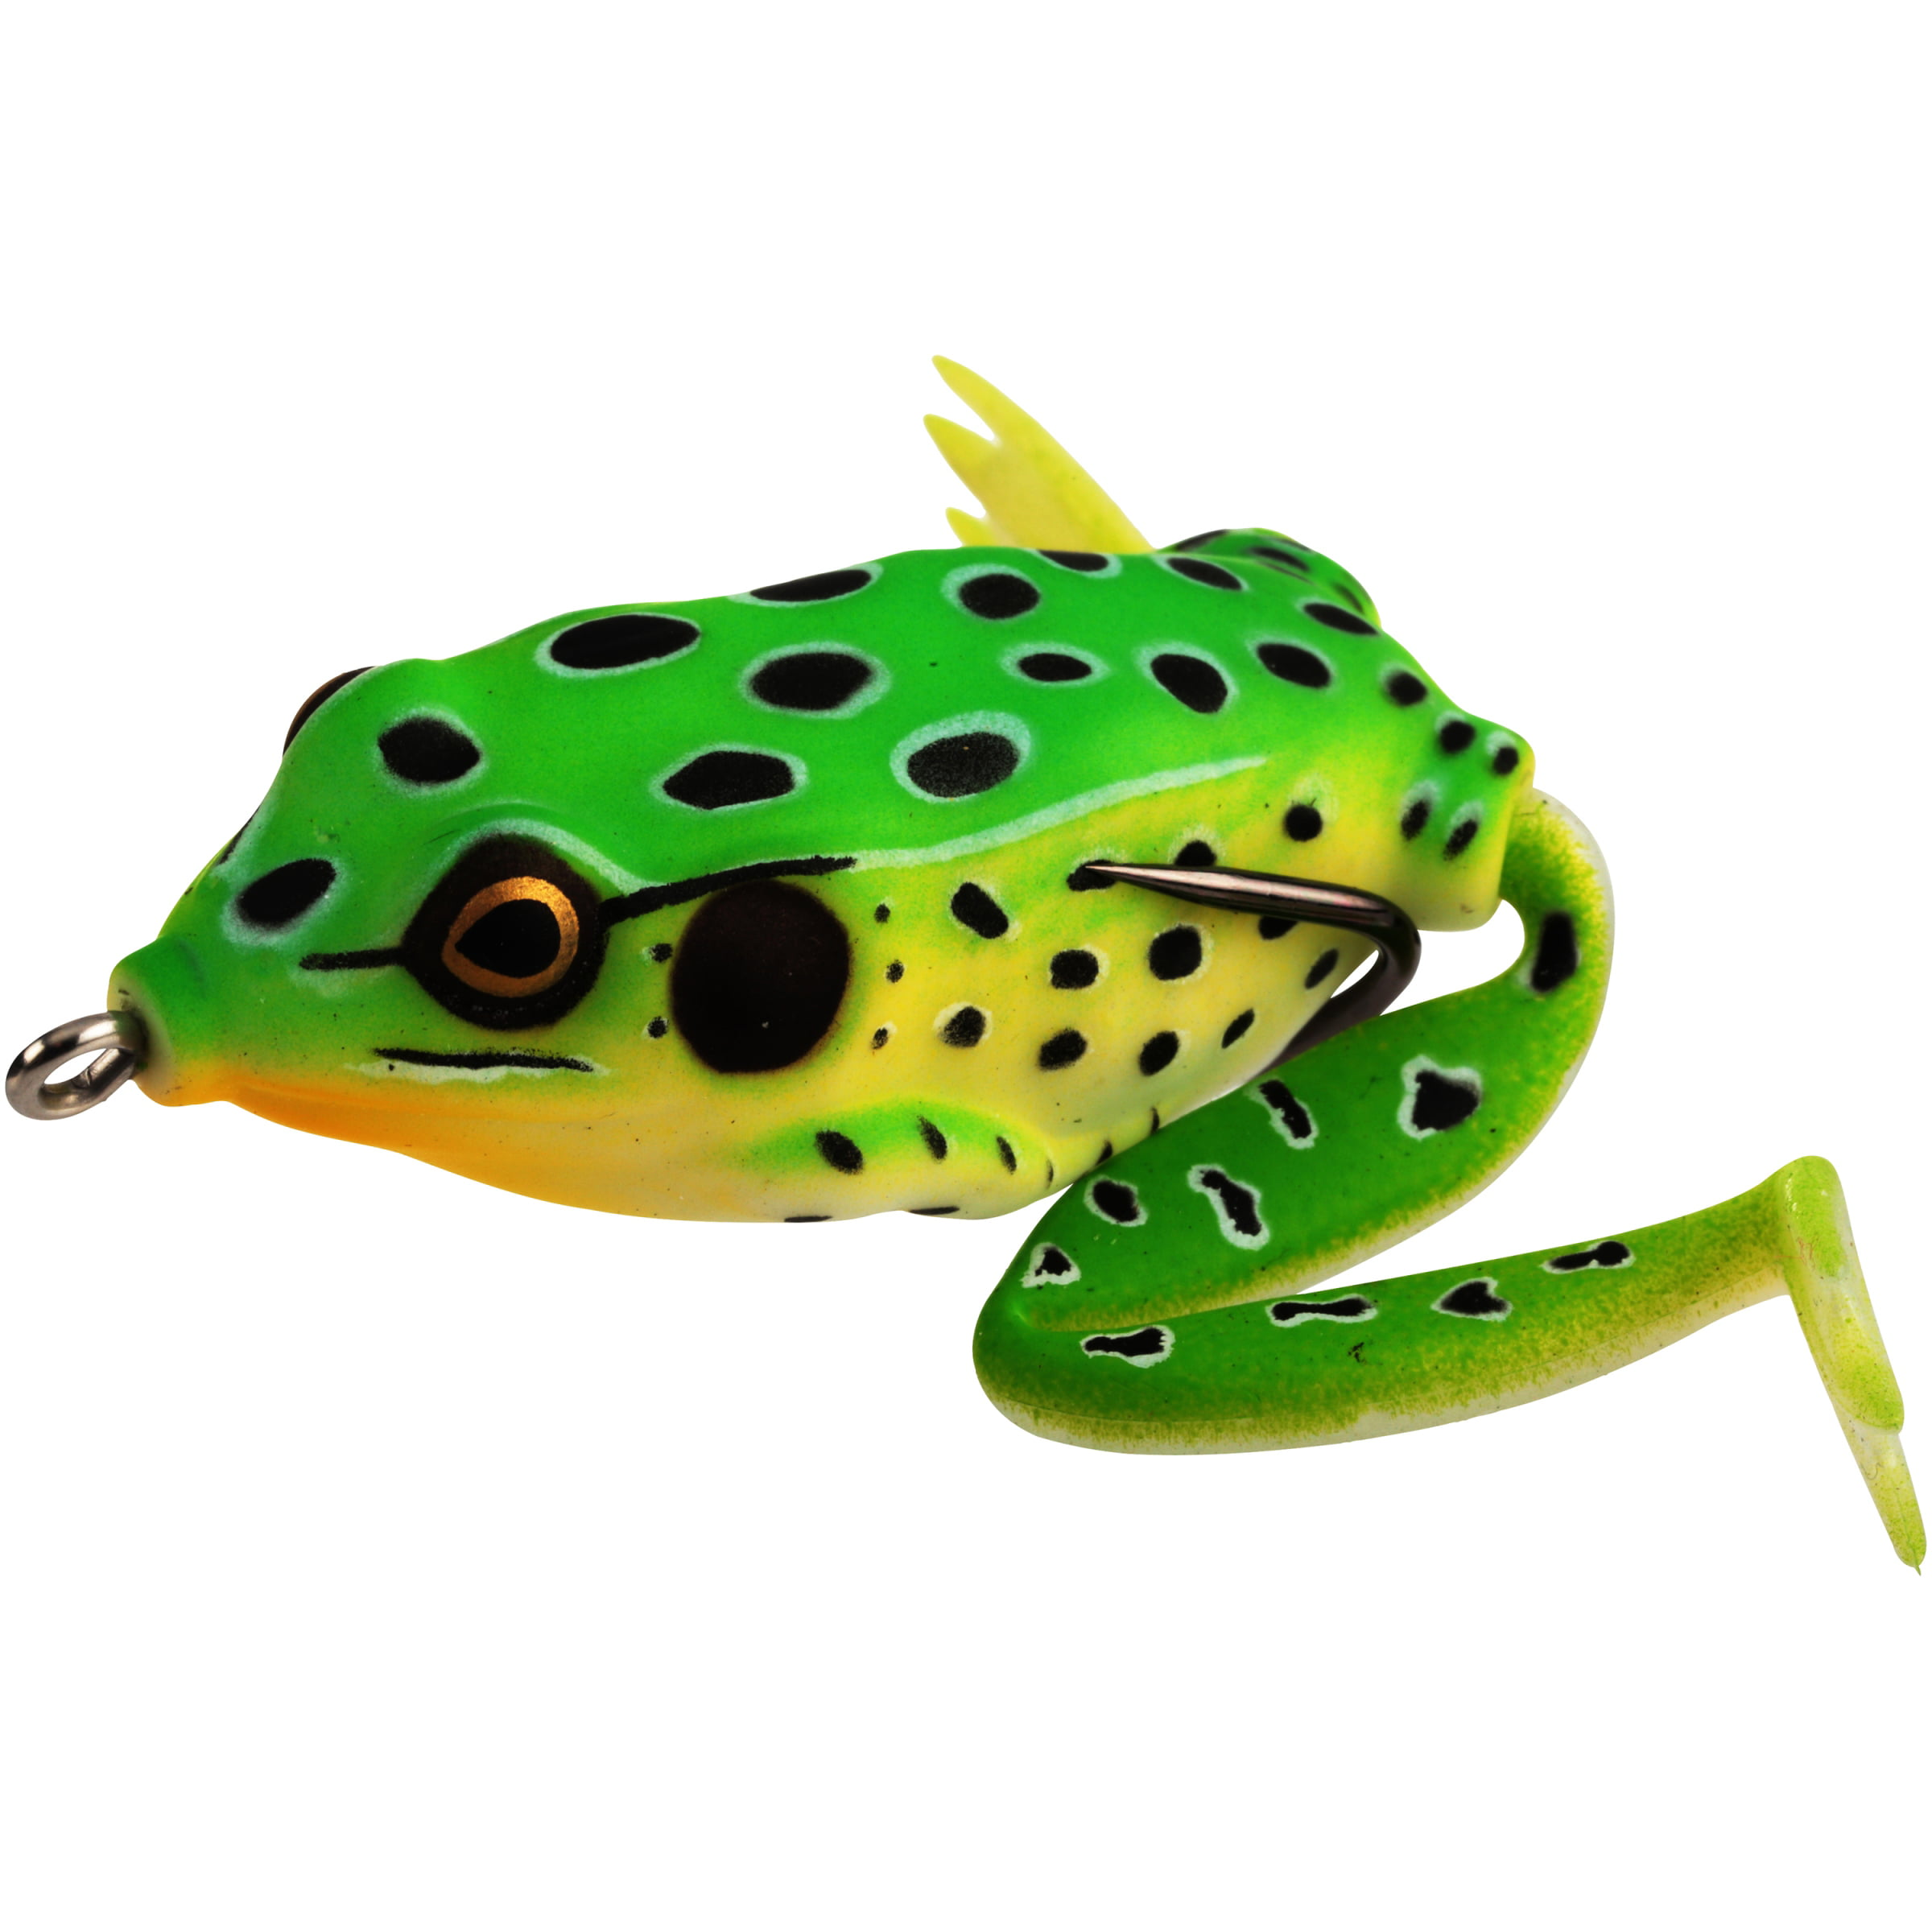 Lunkerhunt Lunker Frog Leopard Fishing Lure Carded Pack by BG Distribution & Marketing